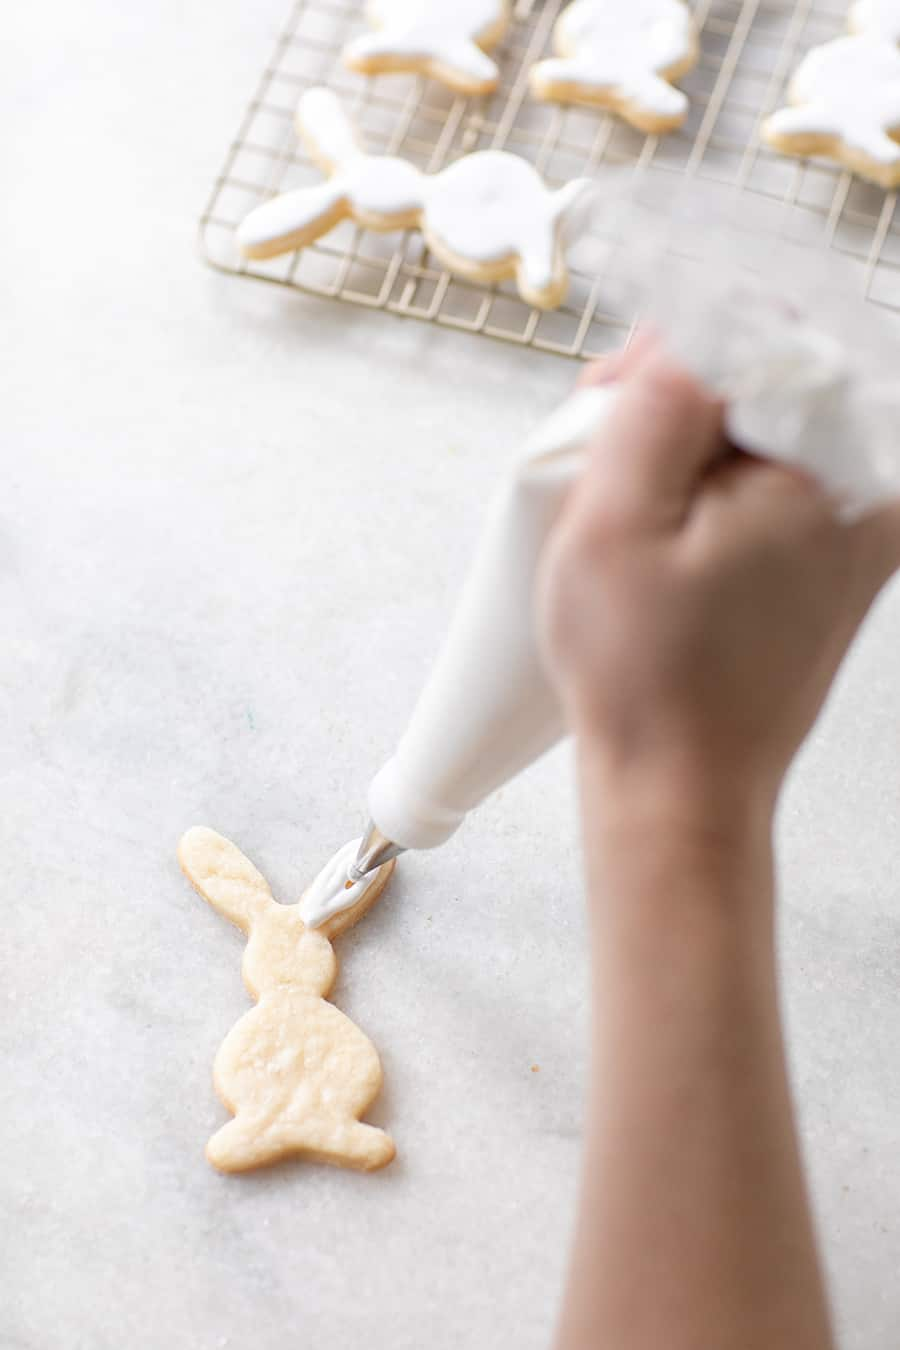 Bunny Sugar Cookies being frosted with Royal Icing